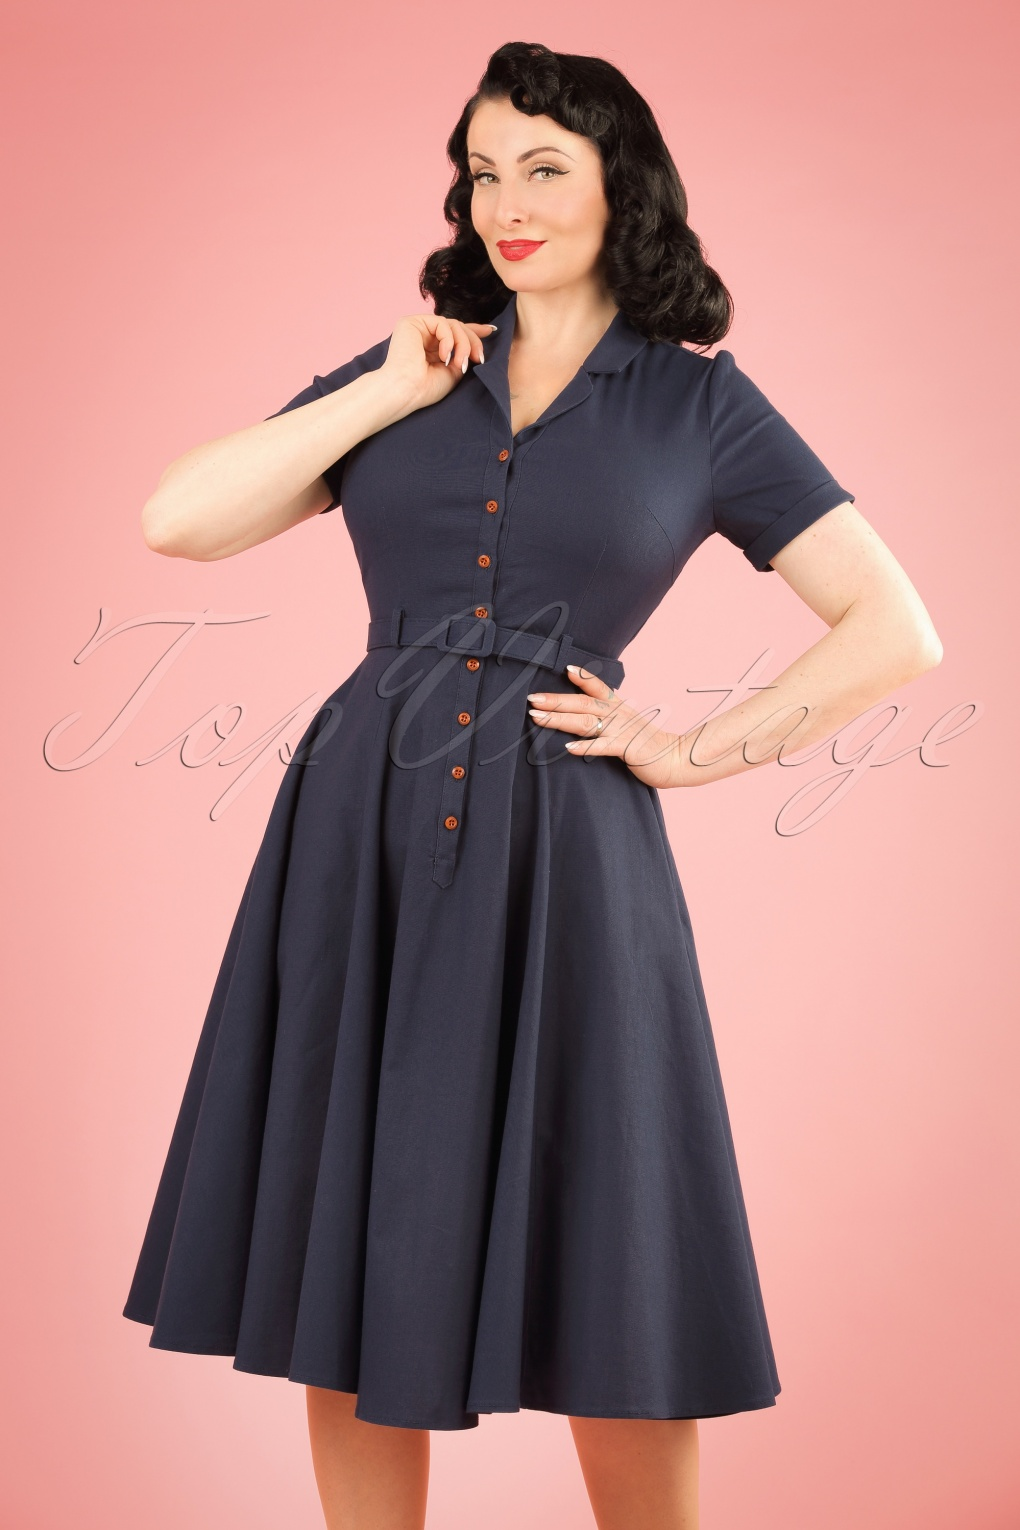 Pin Up Dresses | Pin Up Clothing 50s Caterina Swing Dress in Navy £74.49 AT vintagedancer.com